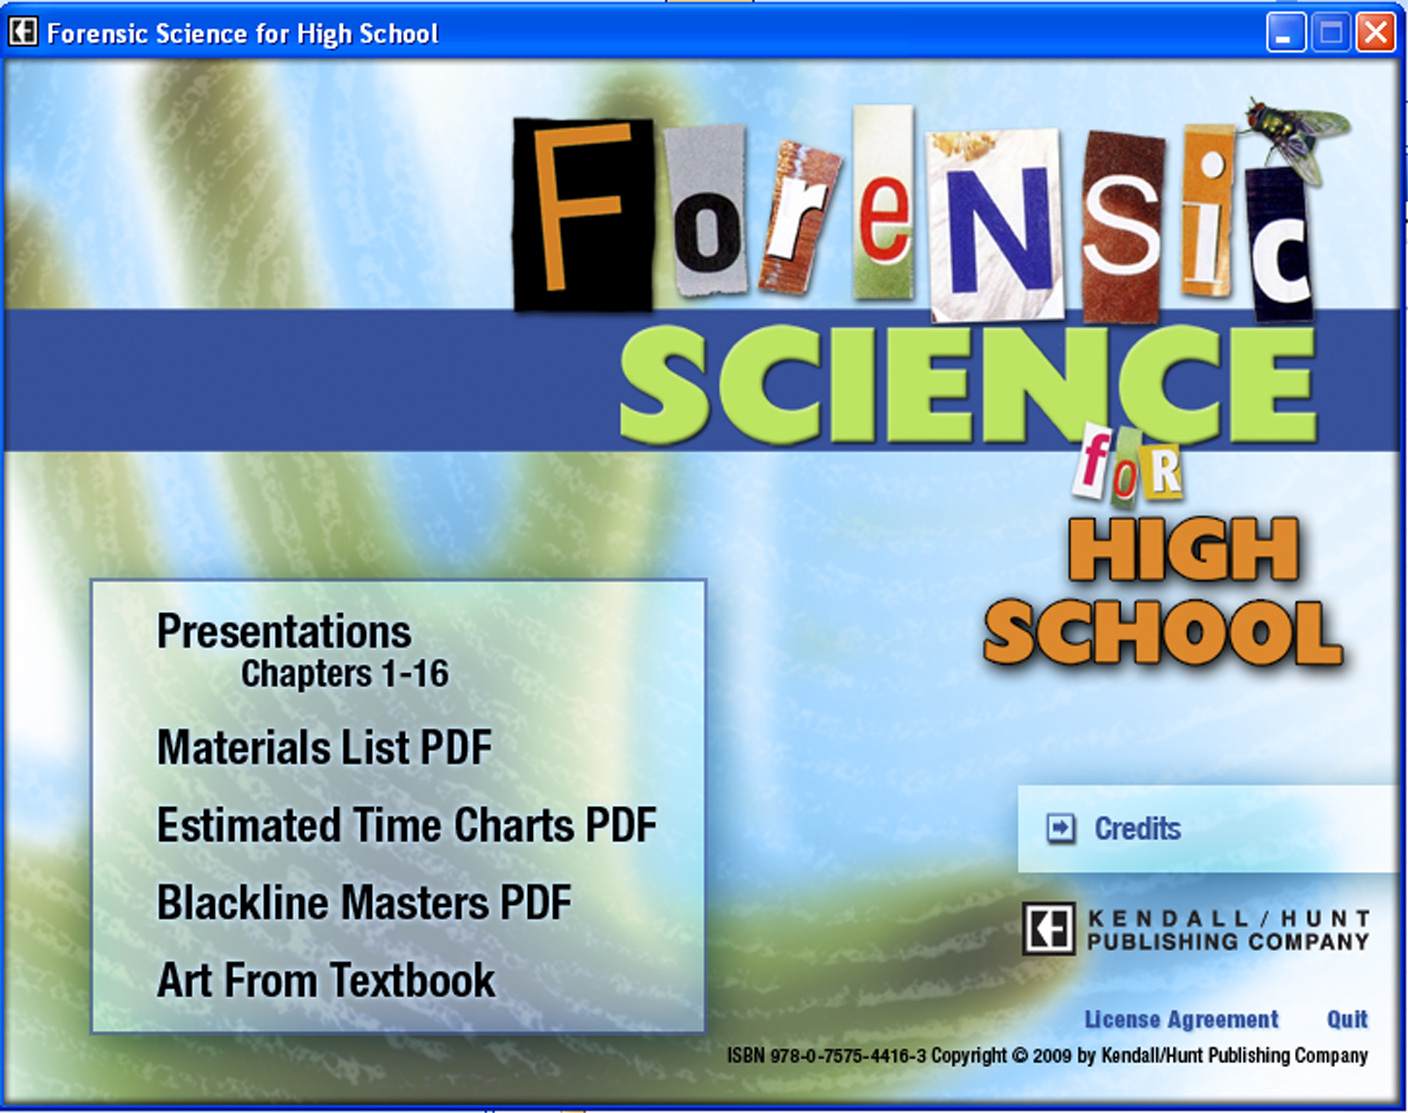 forensic science case studies for students A showcase of fascinating famous forensic cases forensic science is a fascinating on the sheppard case which re-examined the forensic evidence.